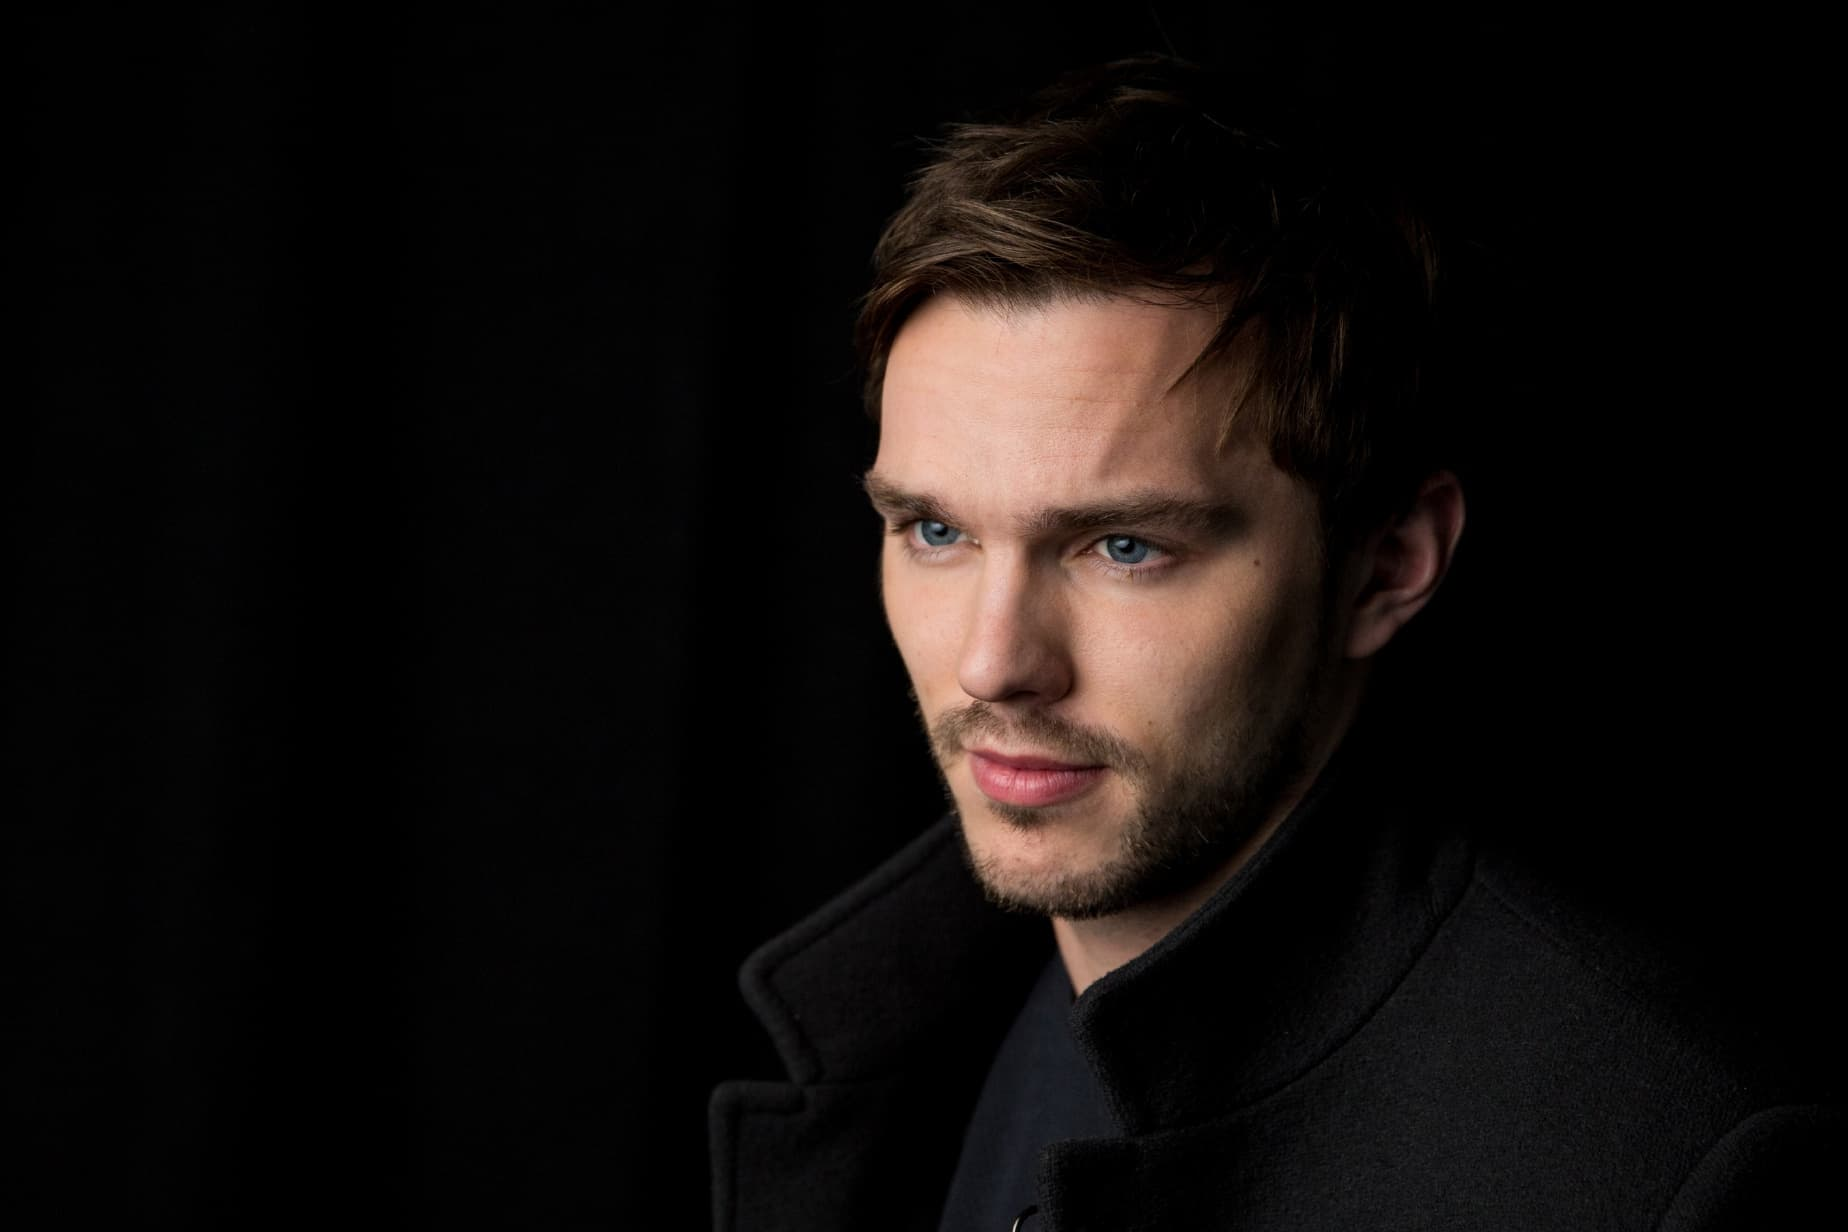 nicholas hoult wallpaper background - photo #5